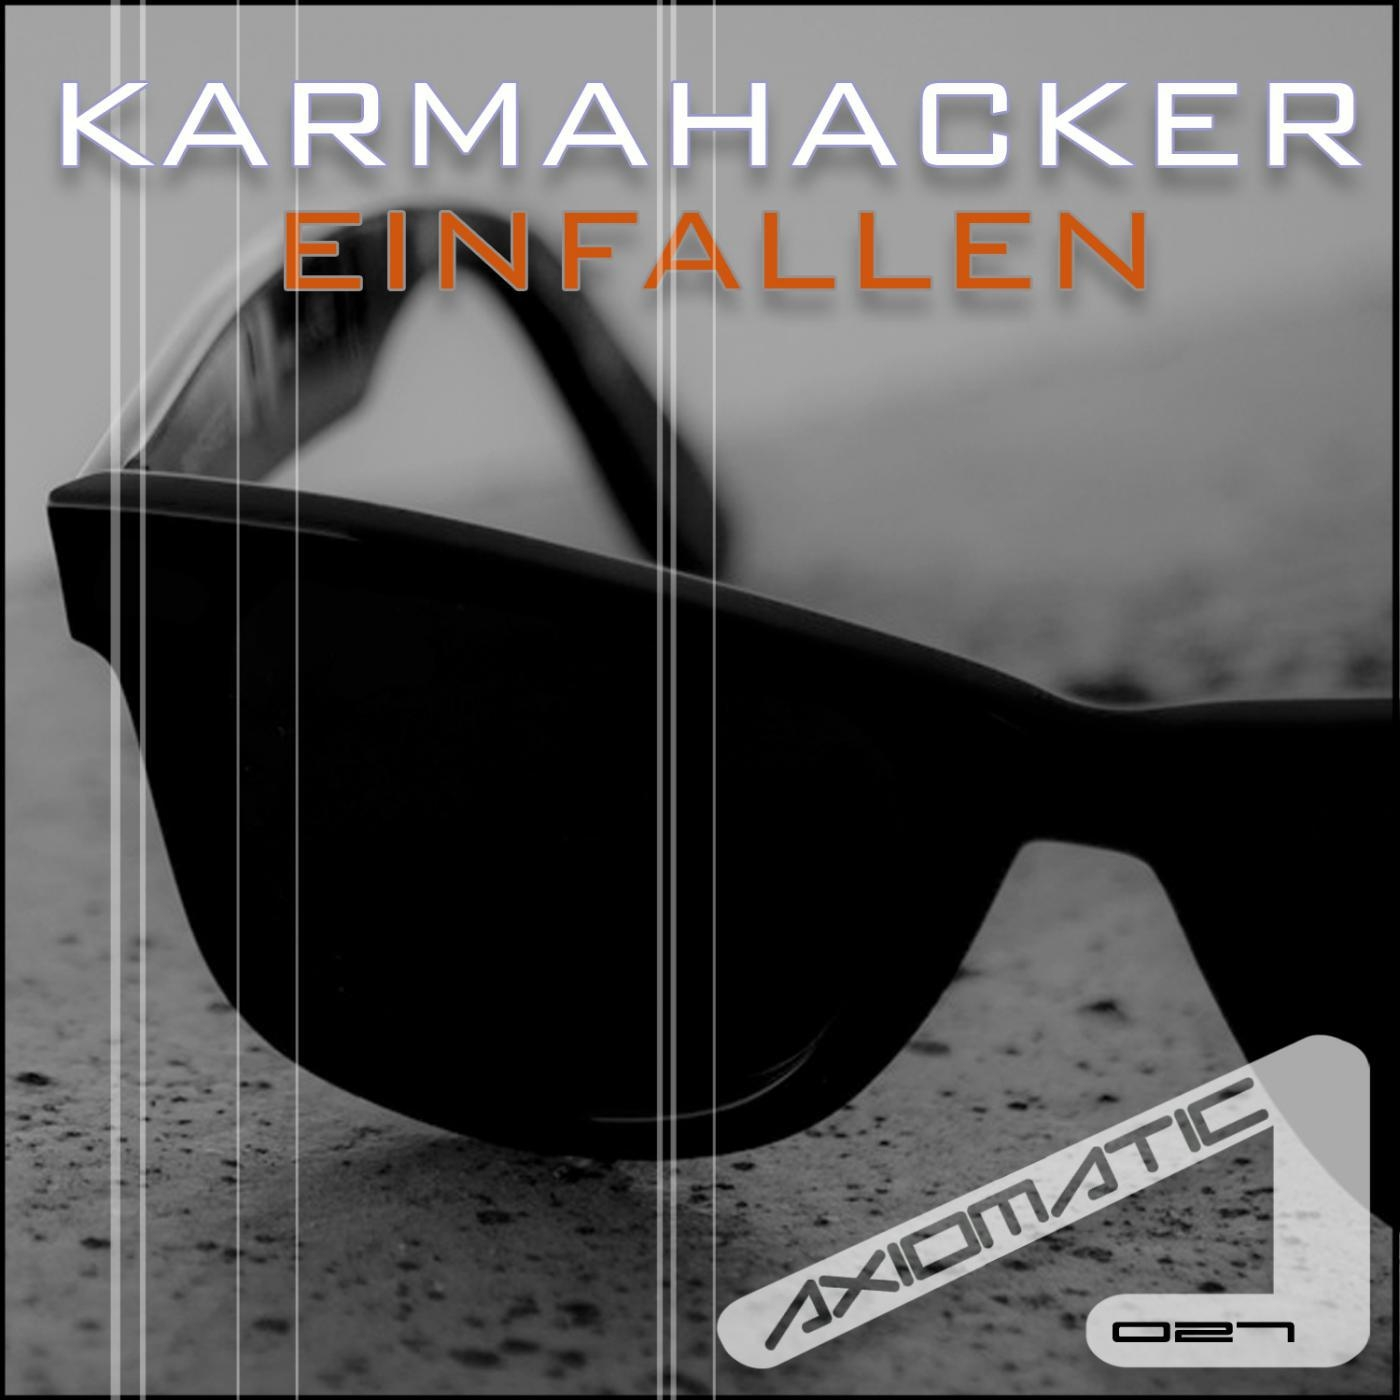 Karmahacker - Among Stars (Original mix)